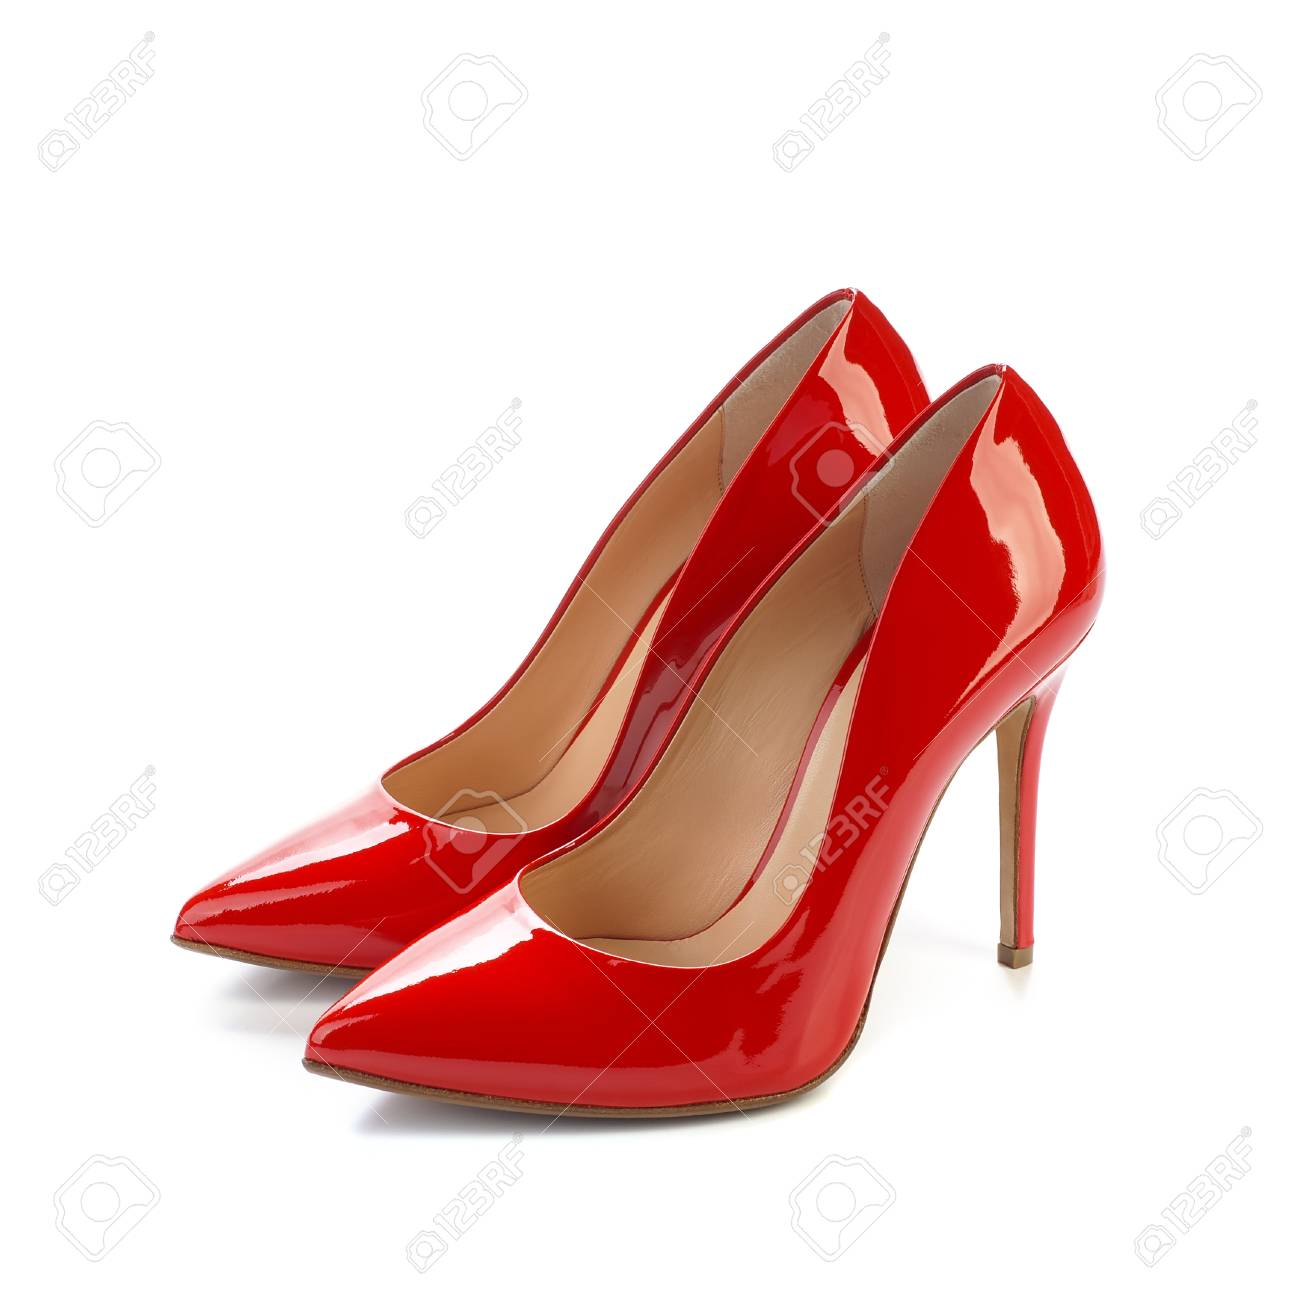 6ade07d8adc Red high heel women classic shoes on white background